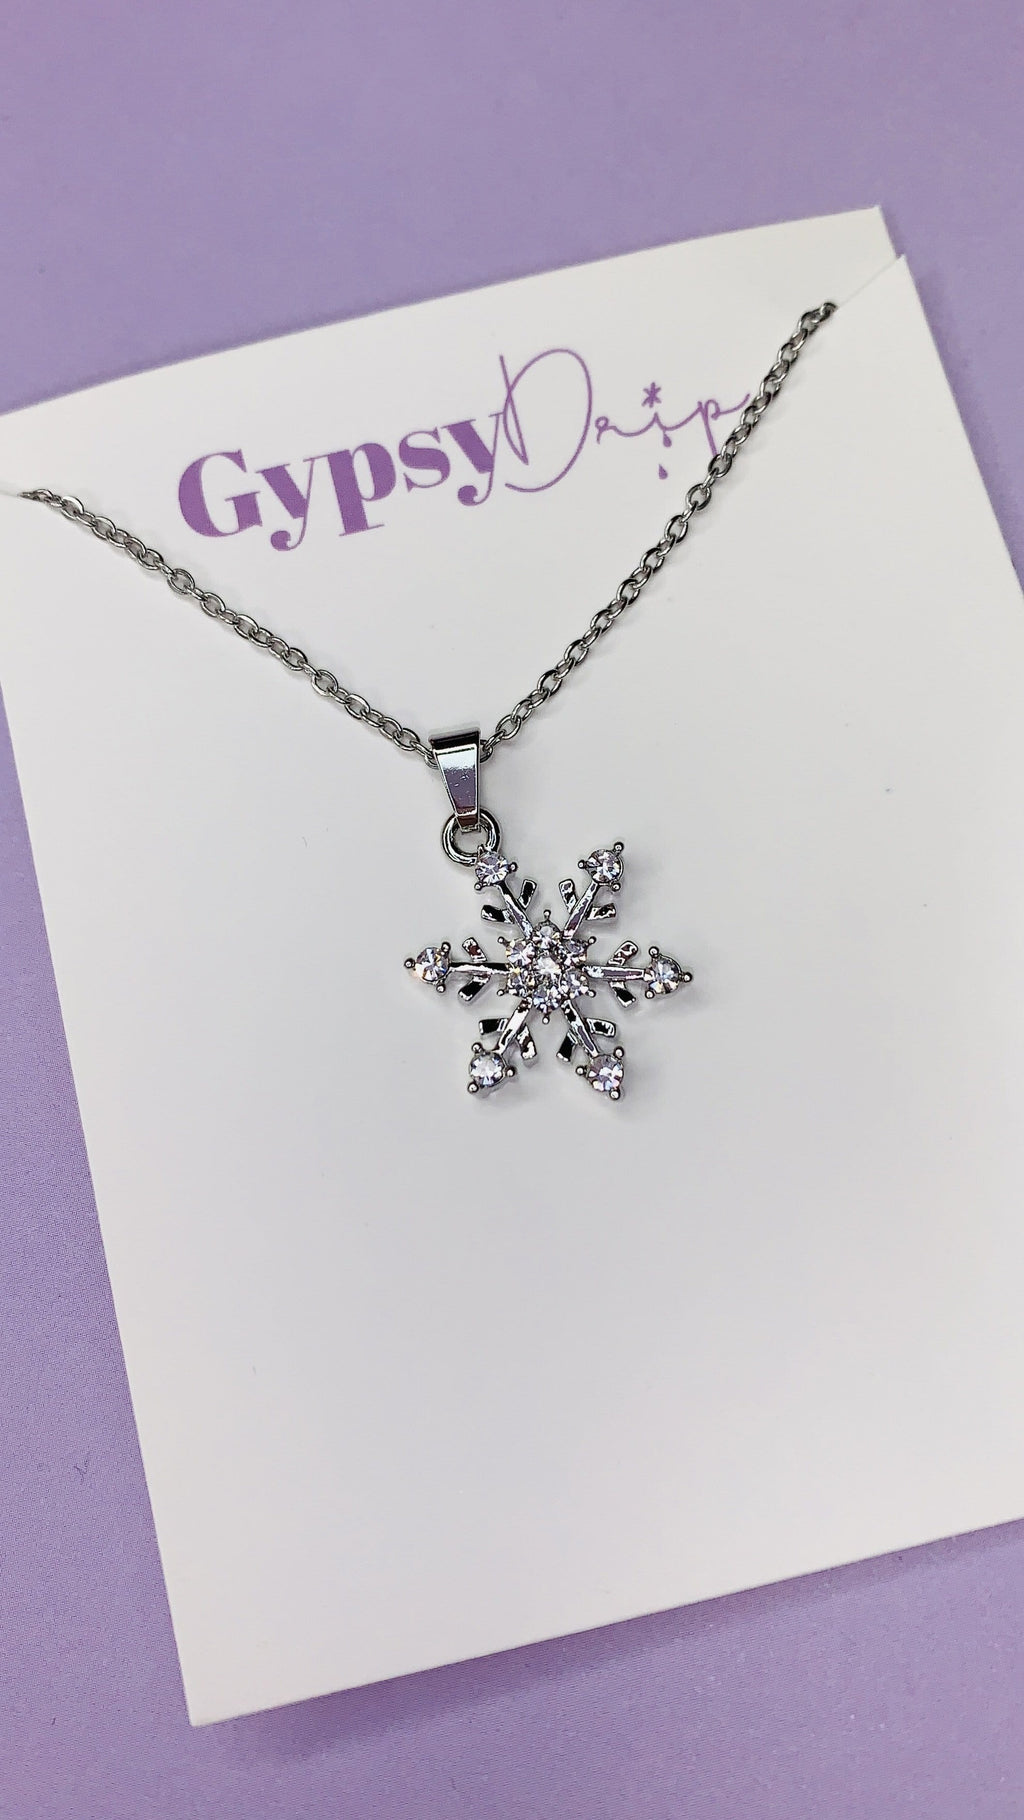 Frosty Necklace